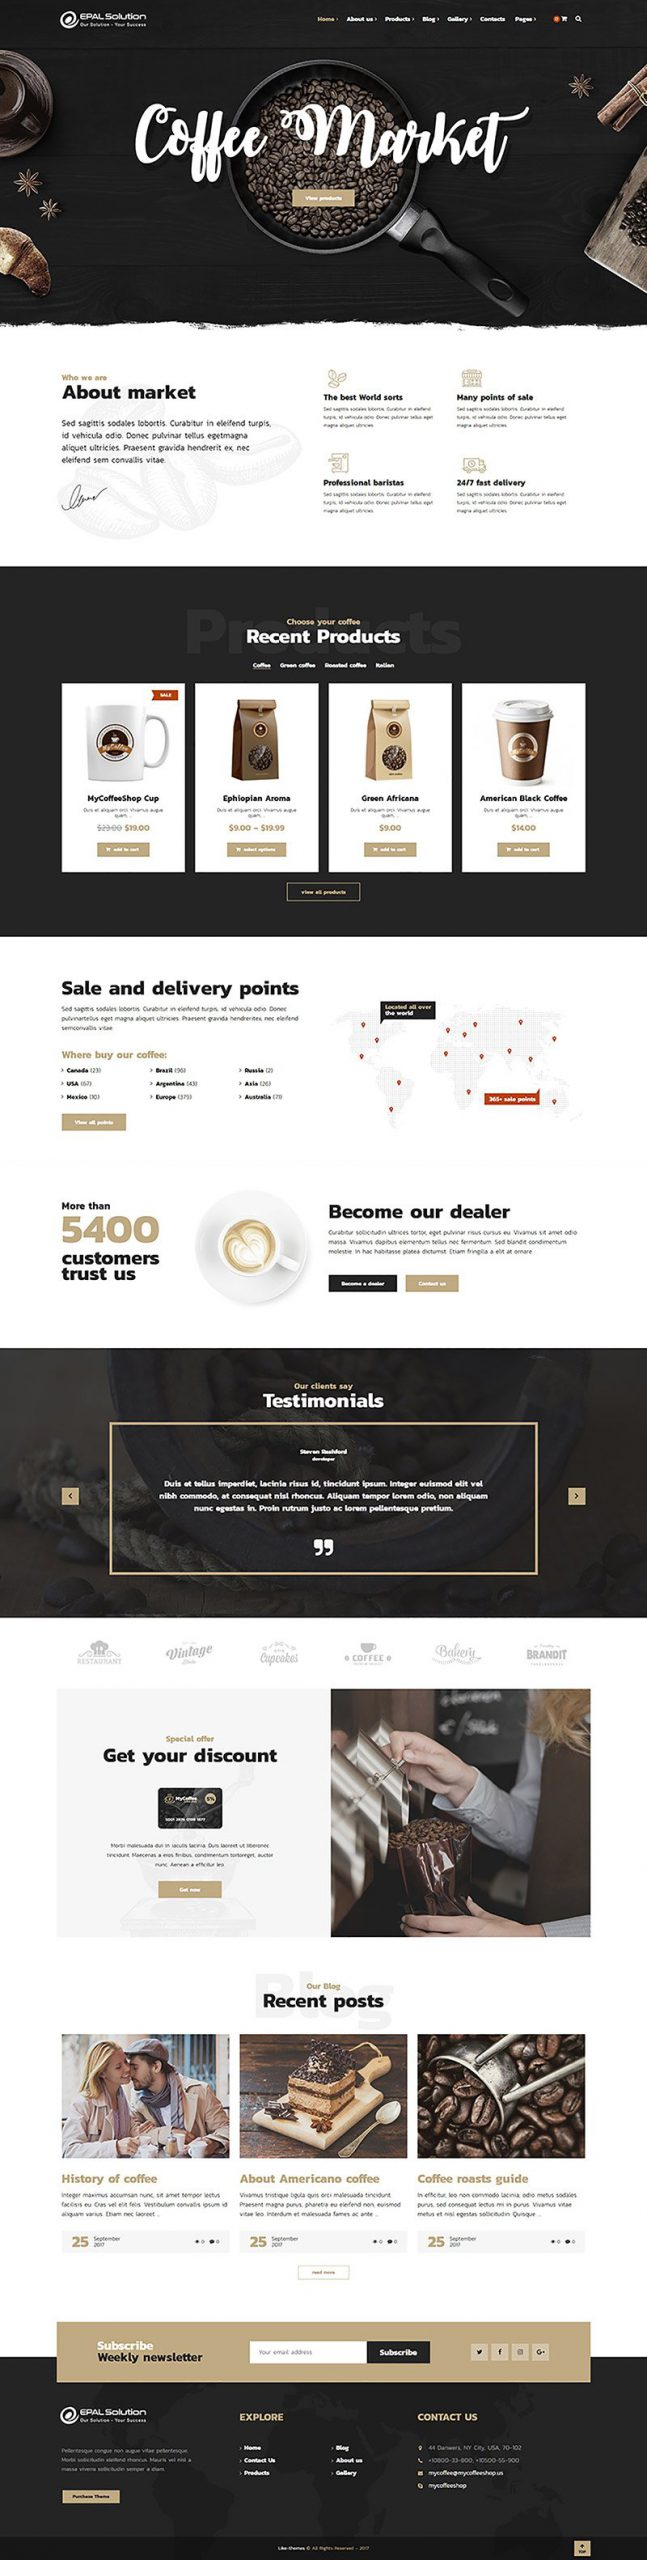 Giao diện website Coffee Market